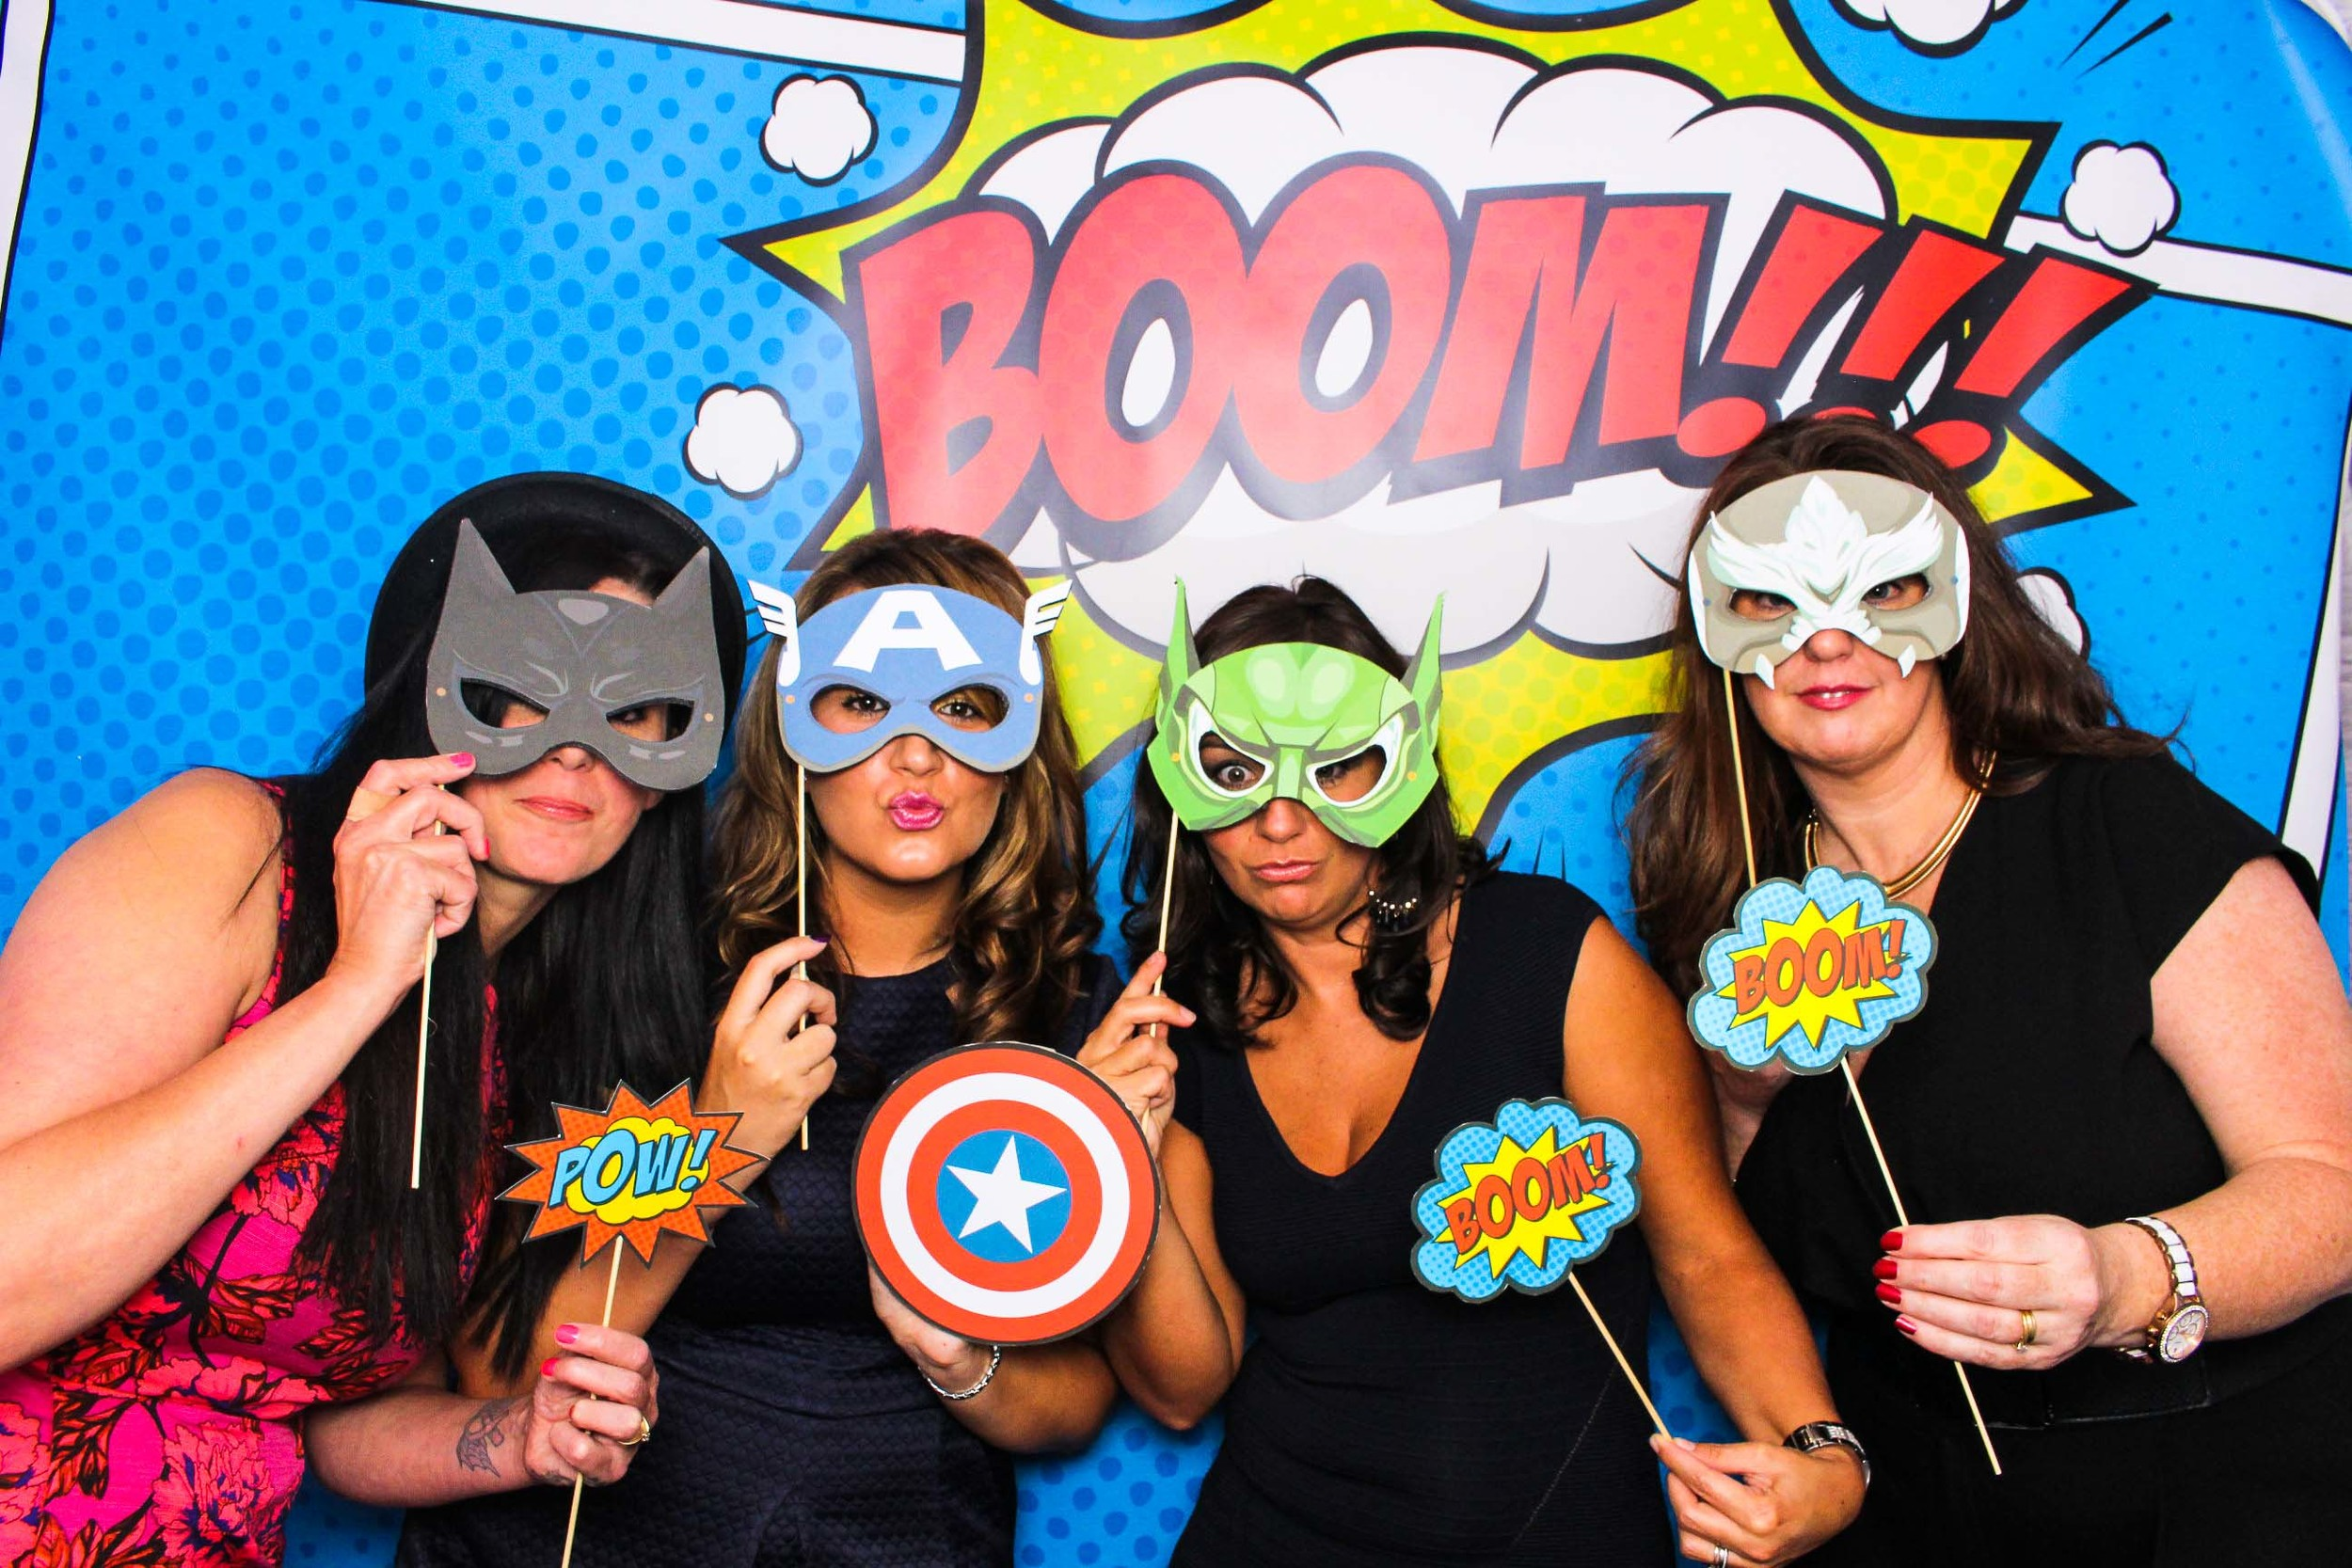 Fotoauto Photo Booth Hire - Shop Direct-31.jpg